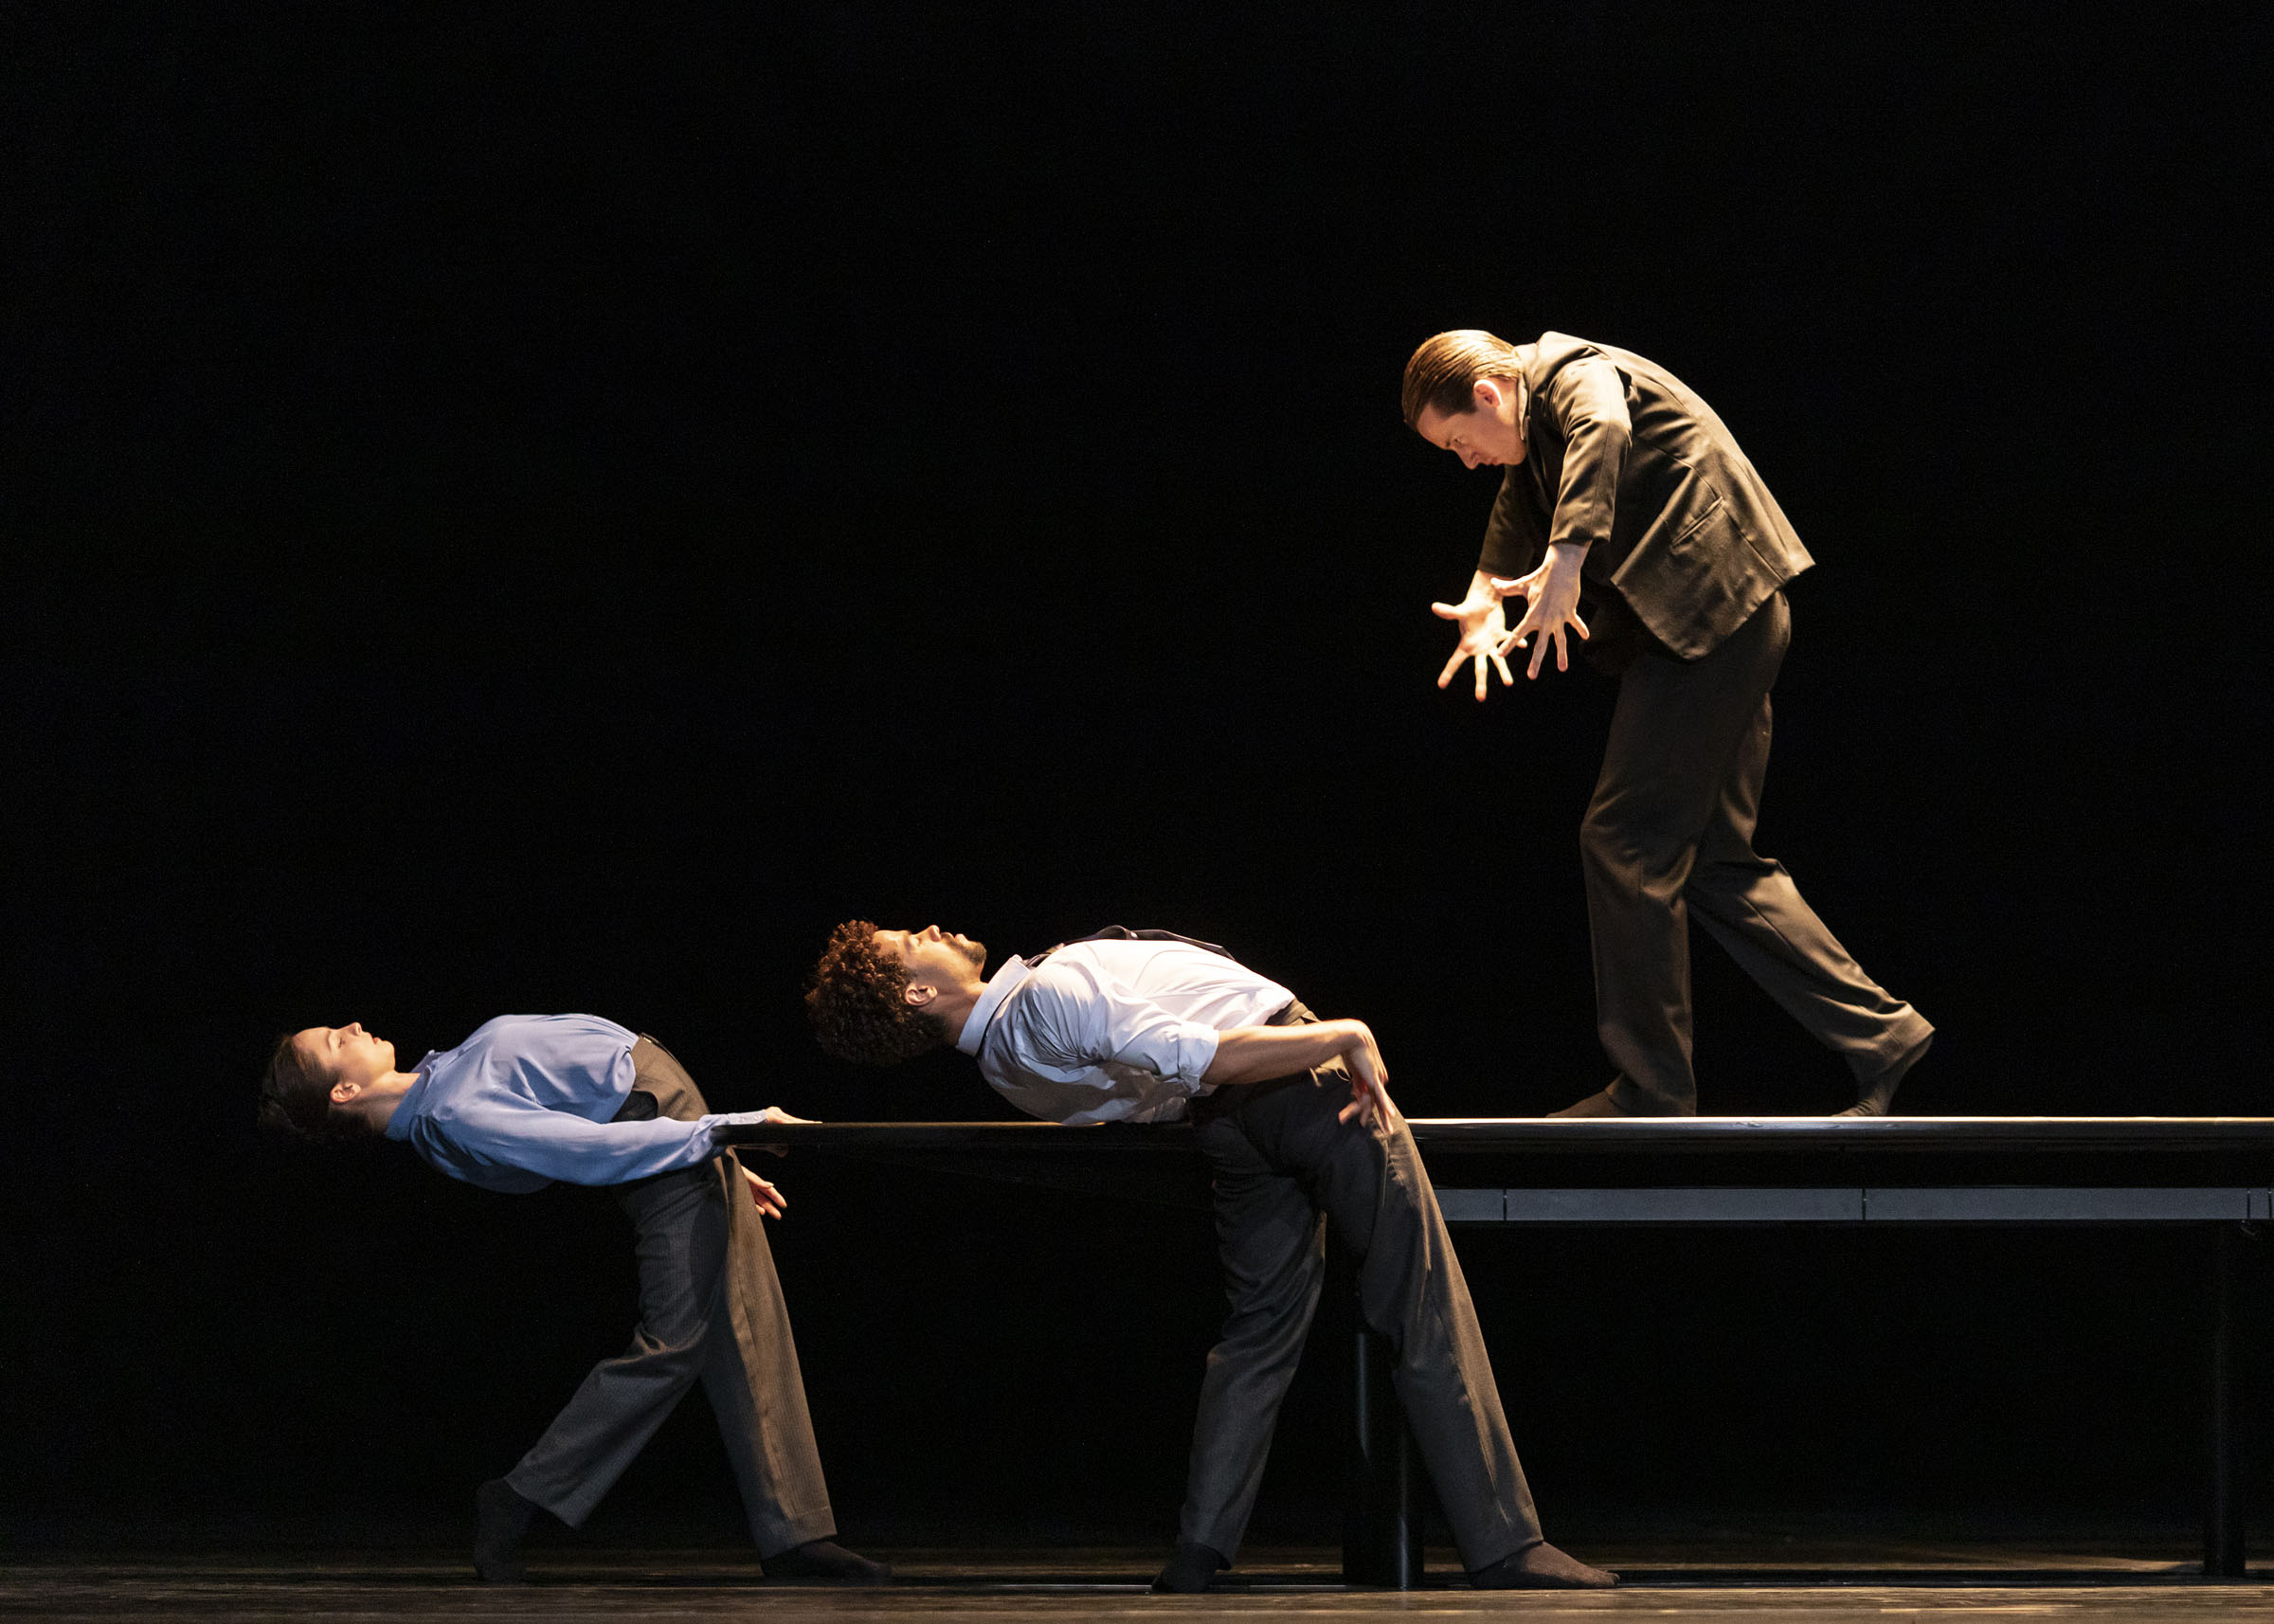 Ashley Dean, Joseph Sissens and Calvin Richardson in 'The Statement', by the Royal Ballet